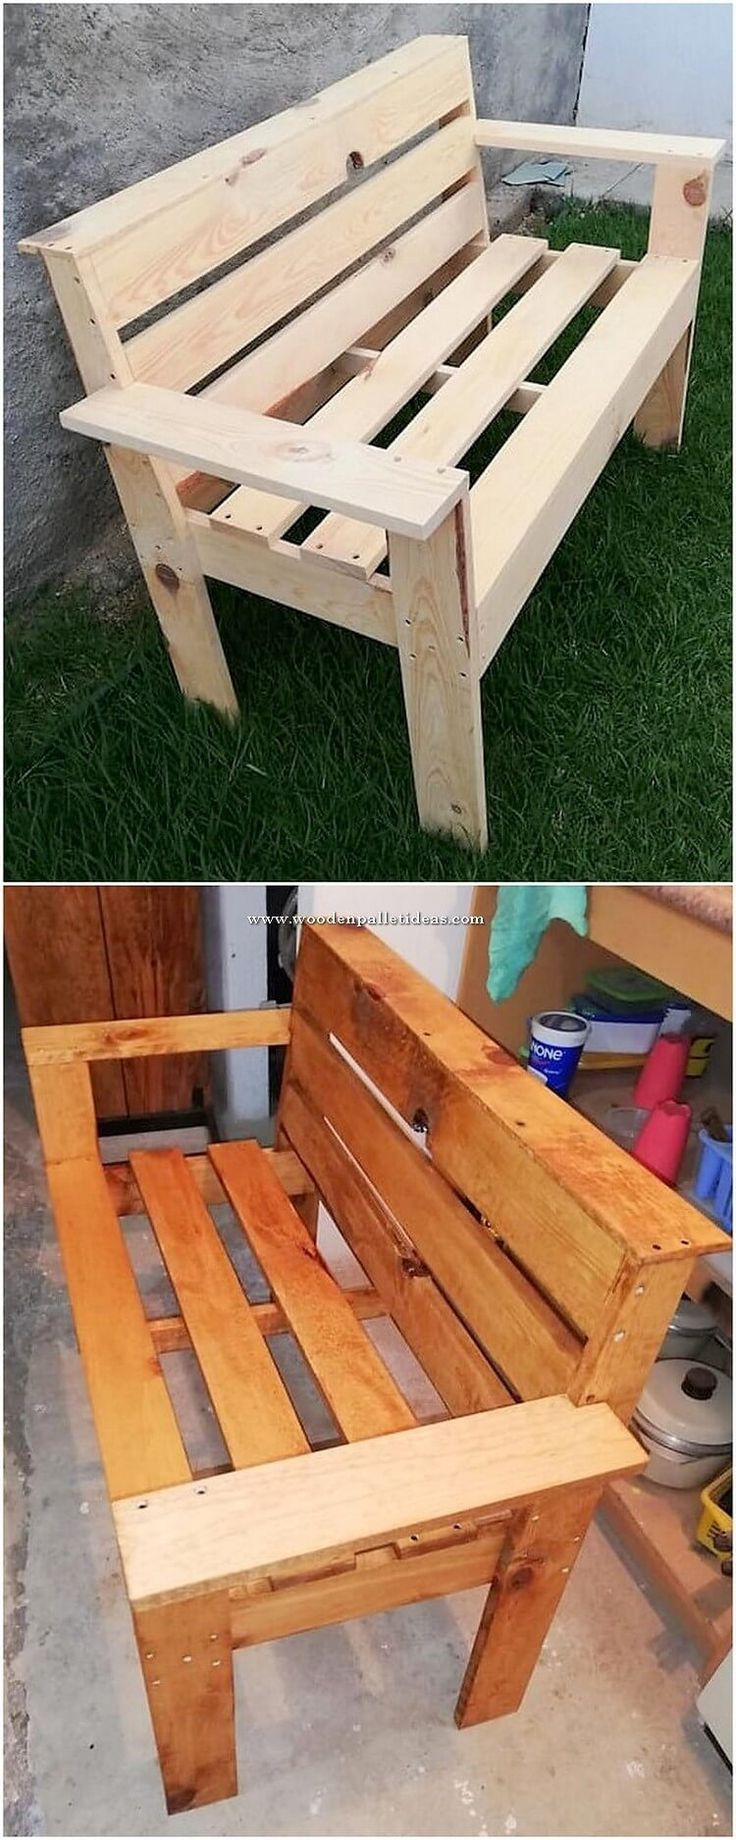 how to build a dresser out of pallets